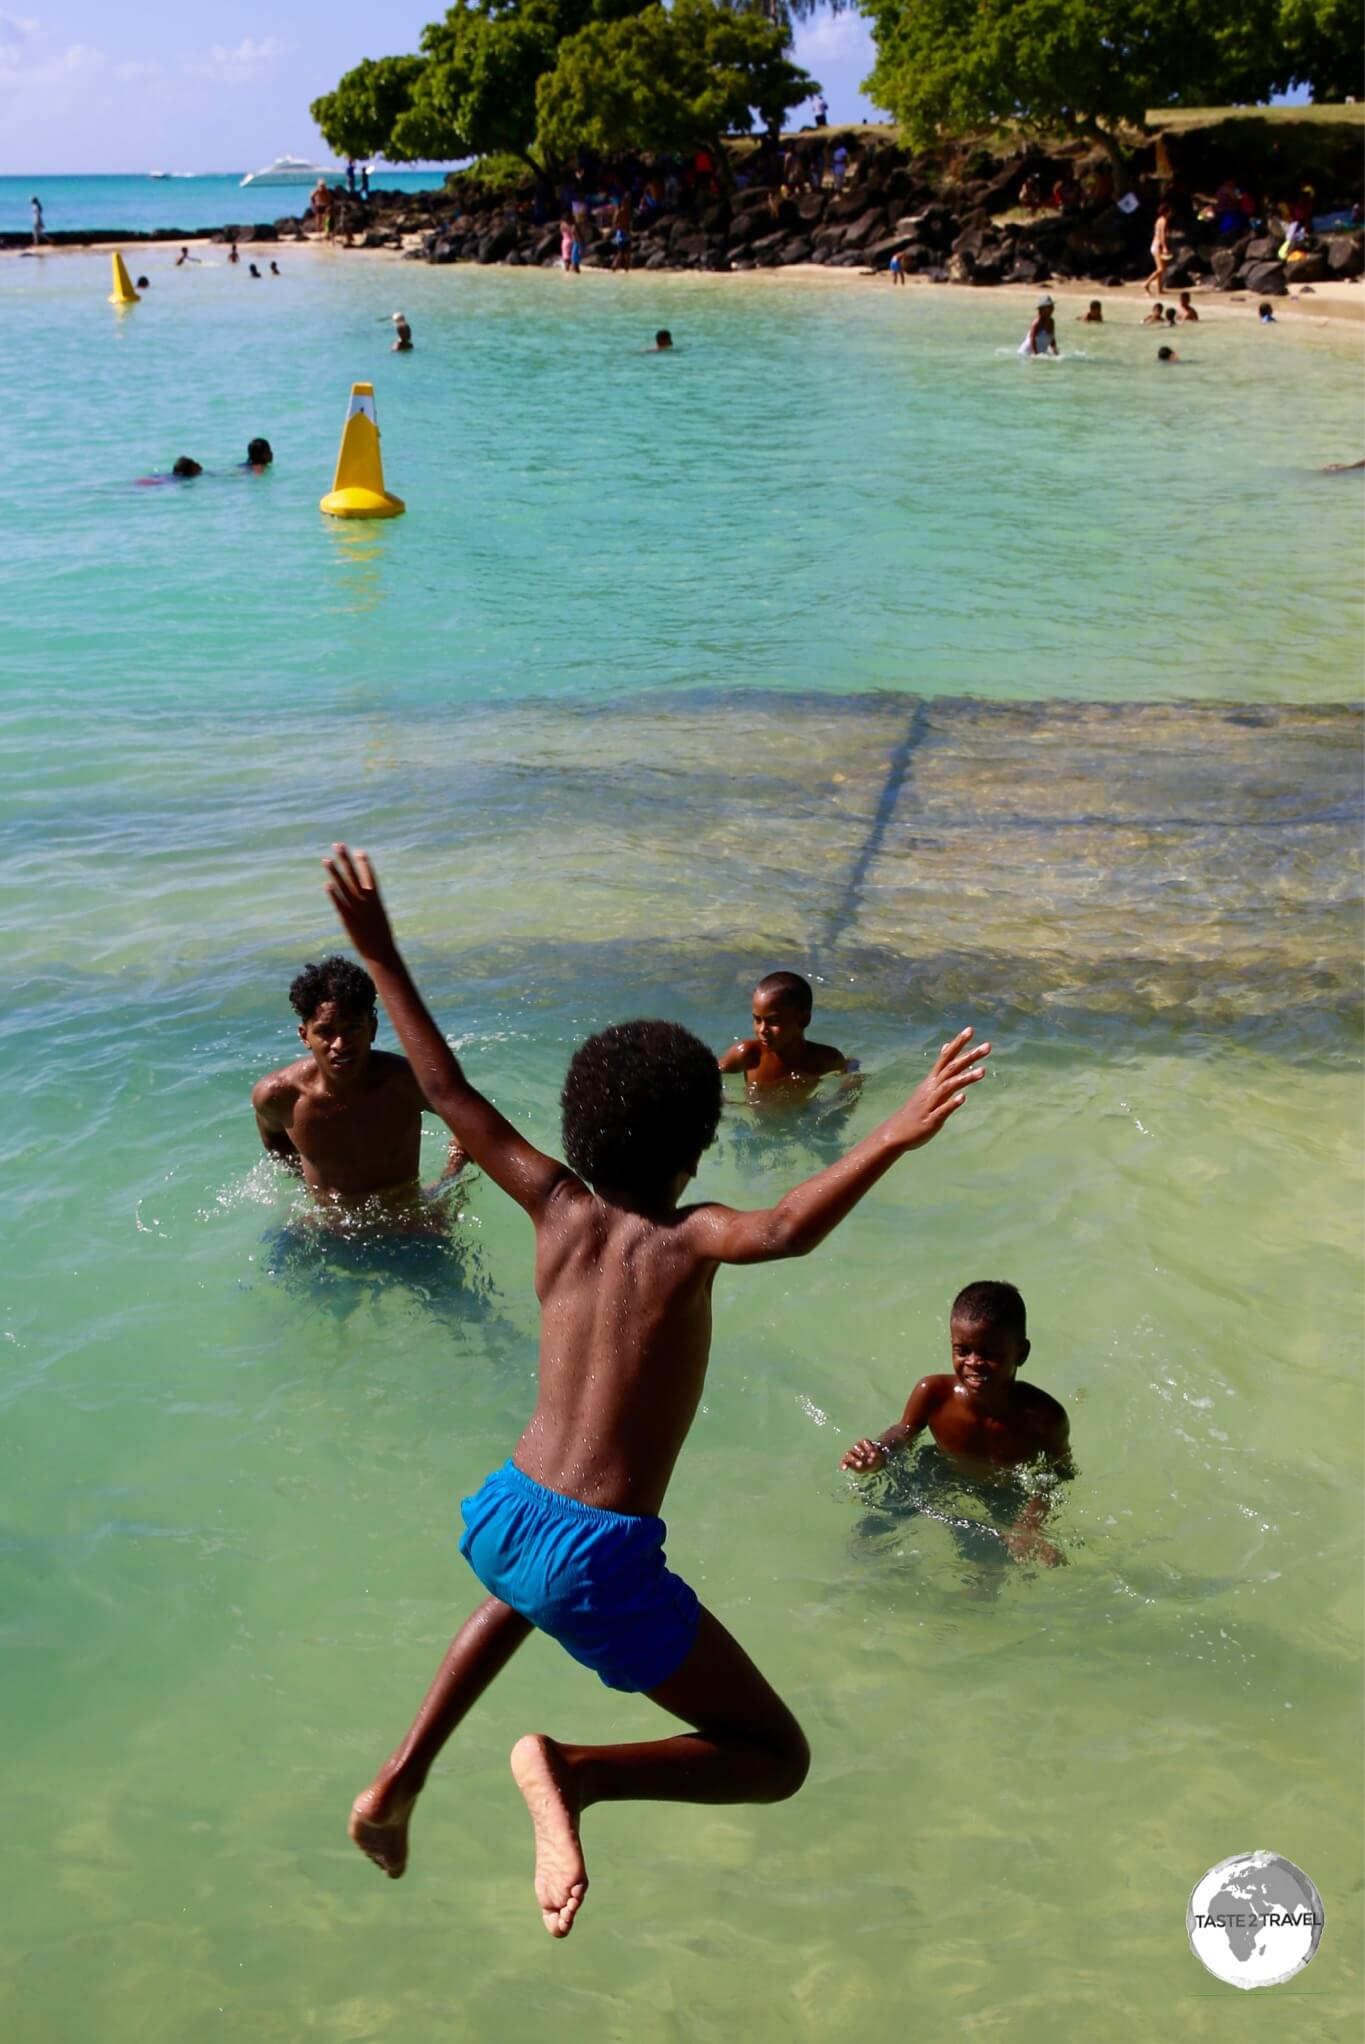 Young Mauritians enjoying the beach at Grand Baie.